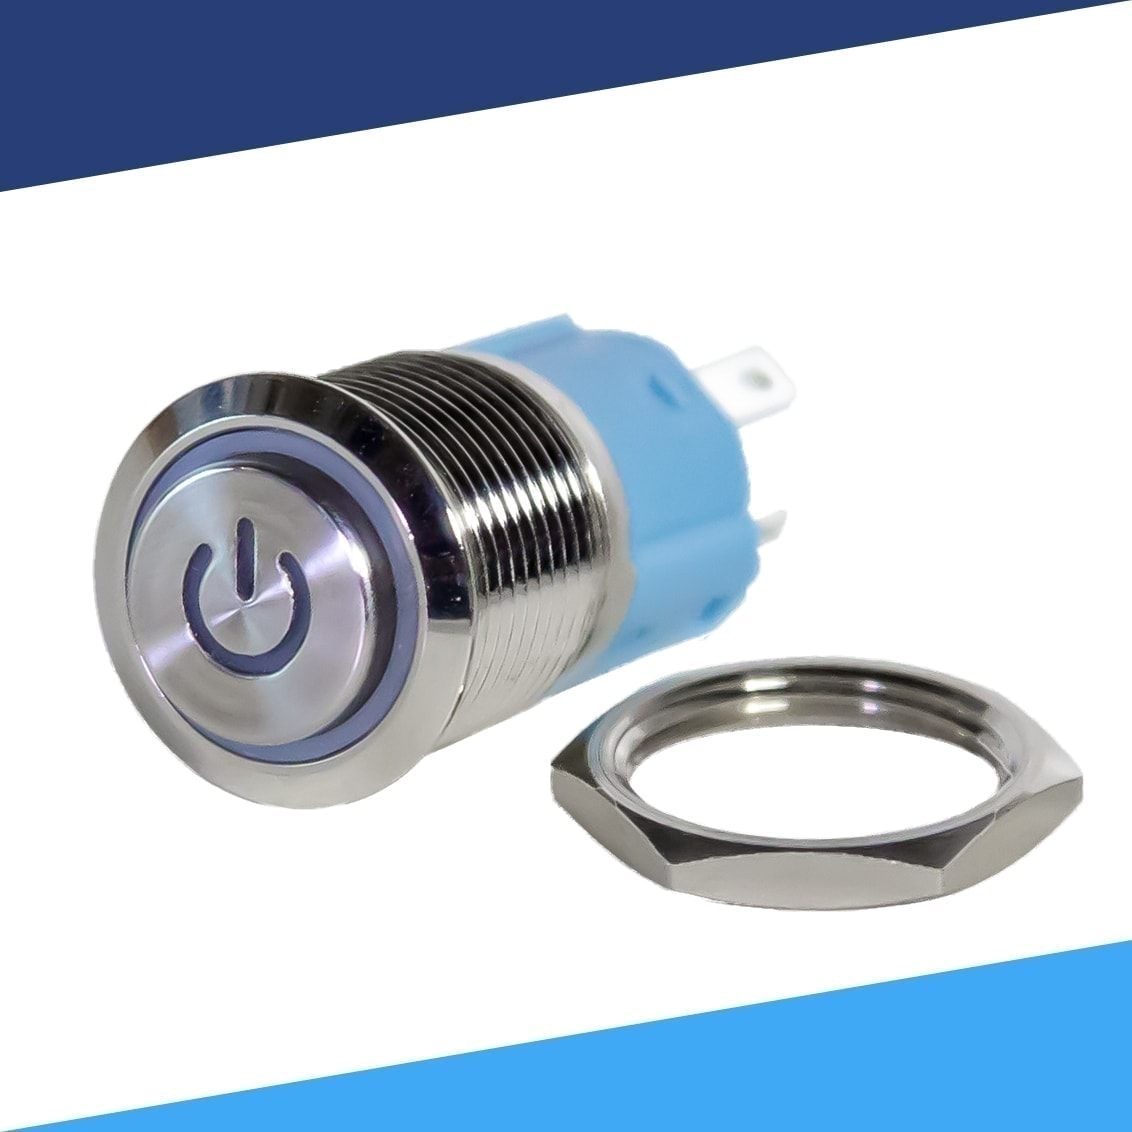 16mm 12V Red LED Power Push Button Switch Aluminum Metal Latching Waterproof/_RU